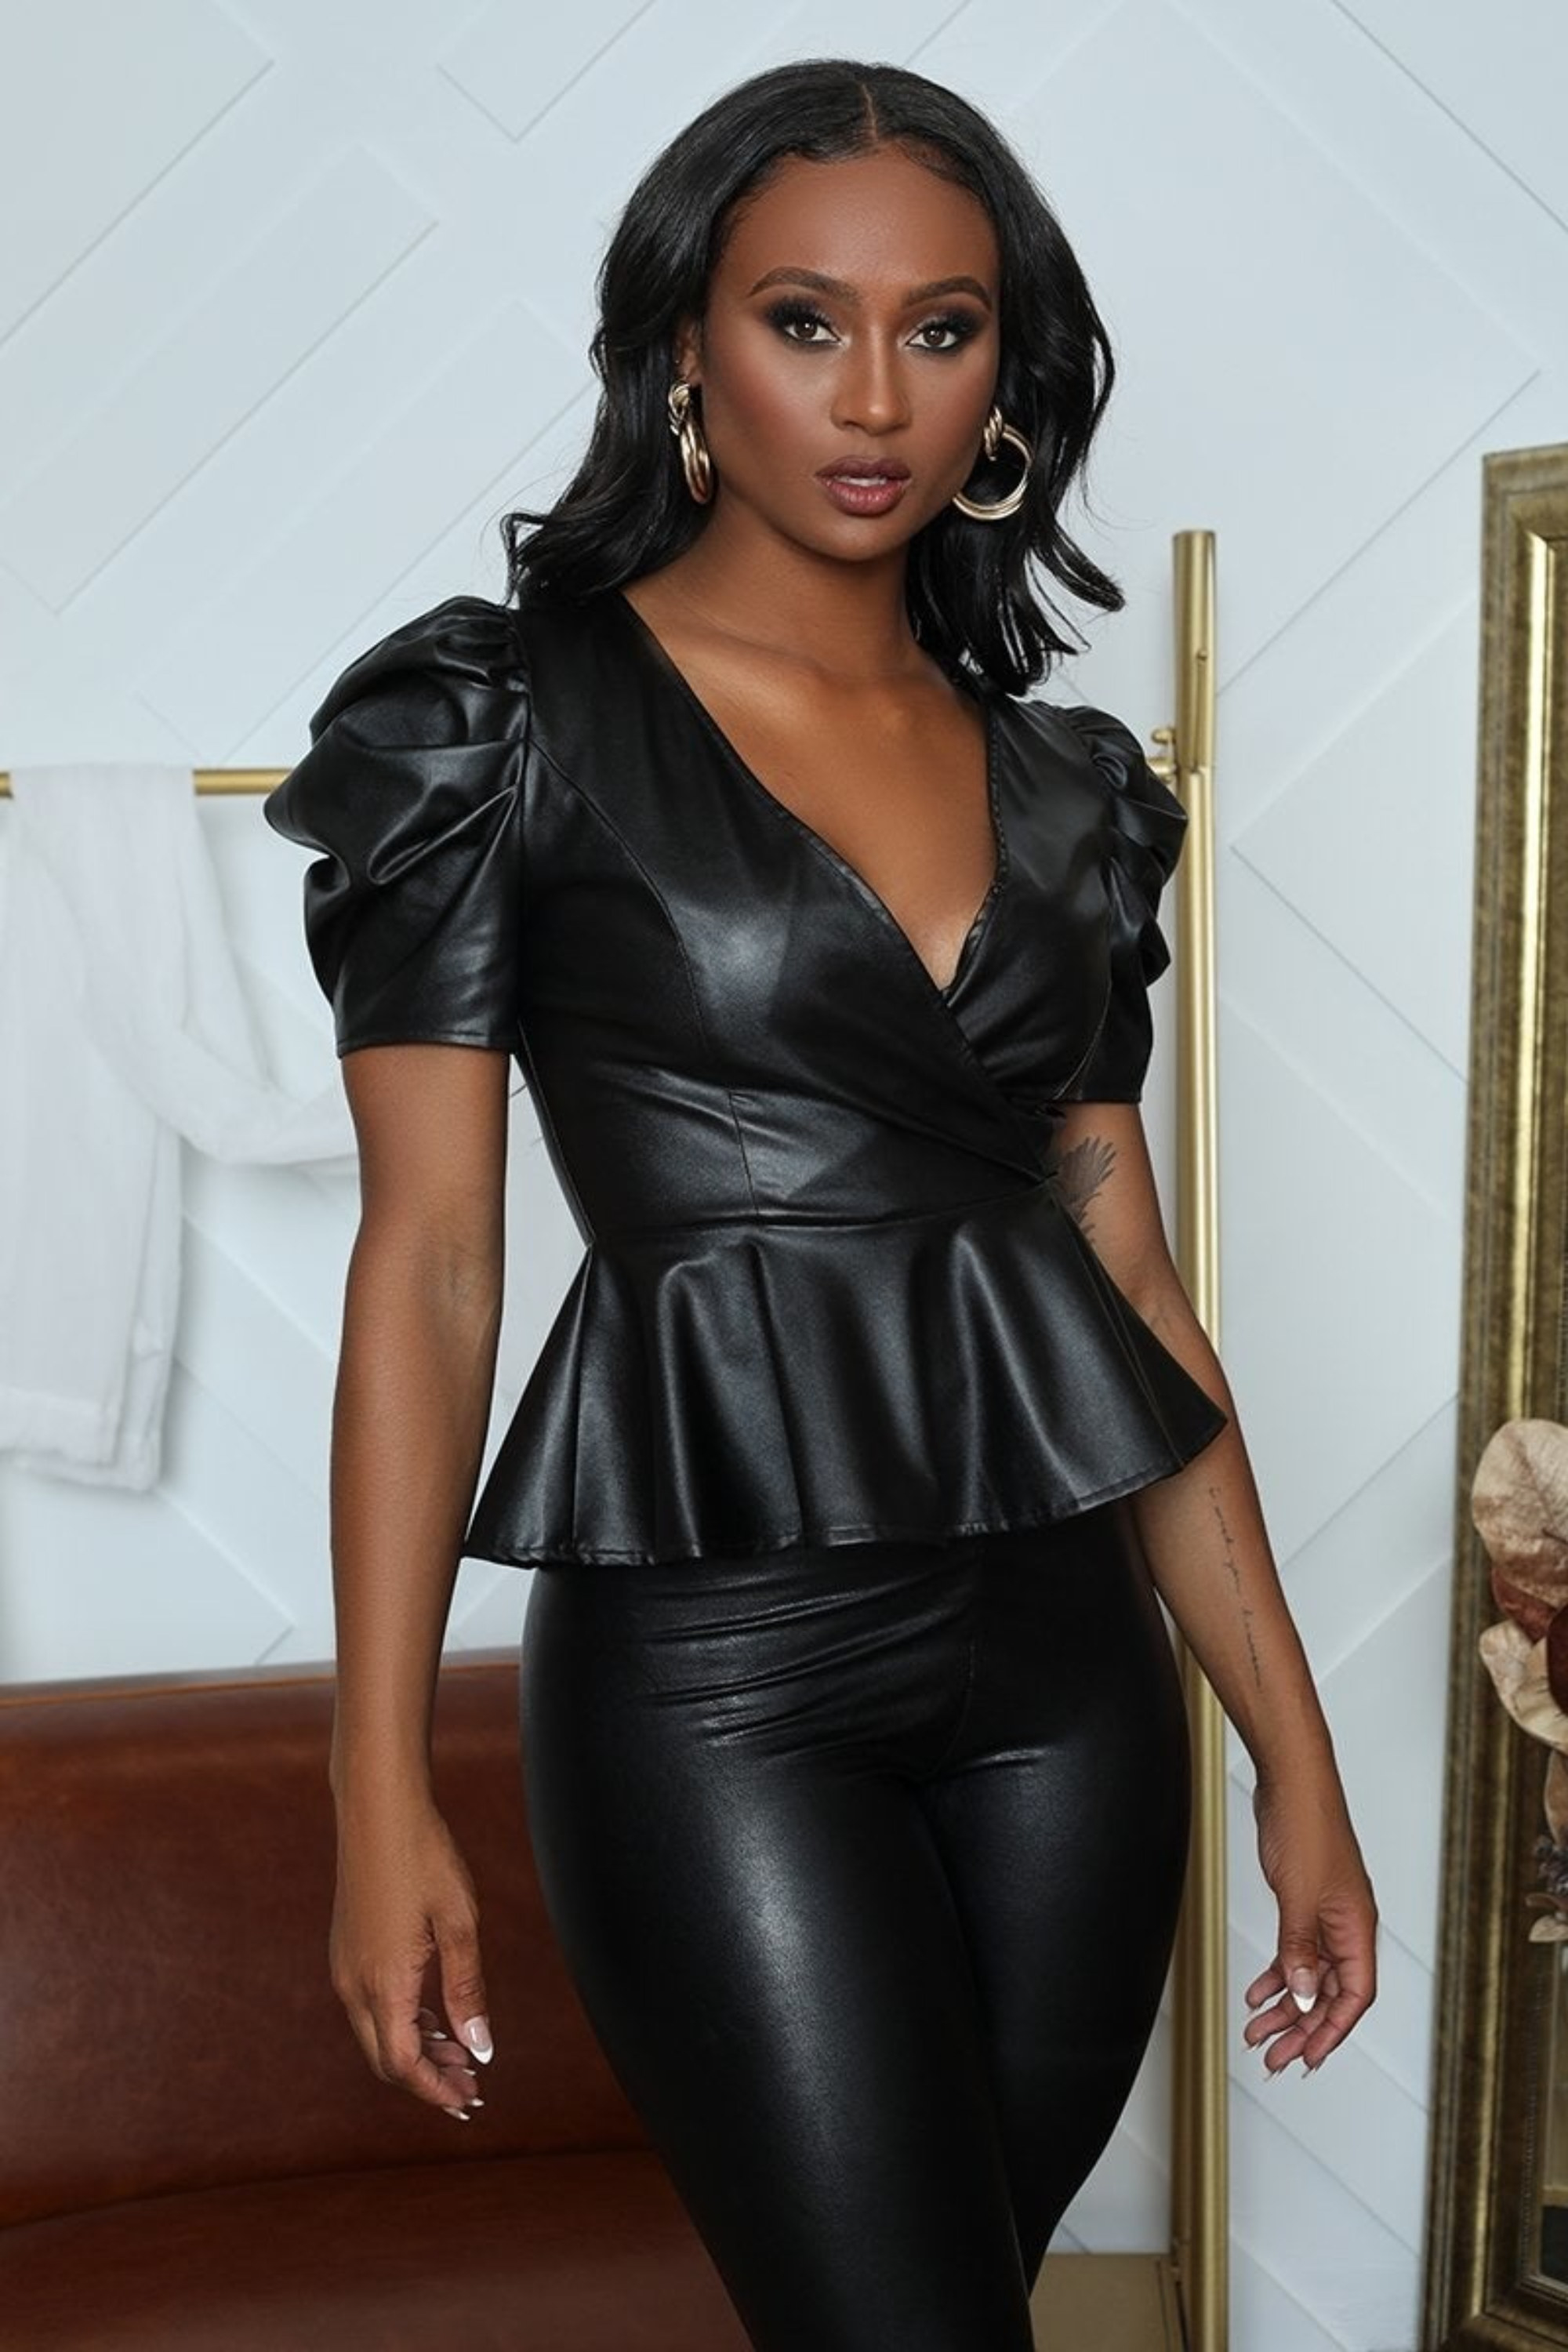 A model wearing the black short puffed sleeve, V-neck top